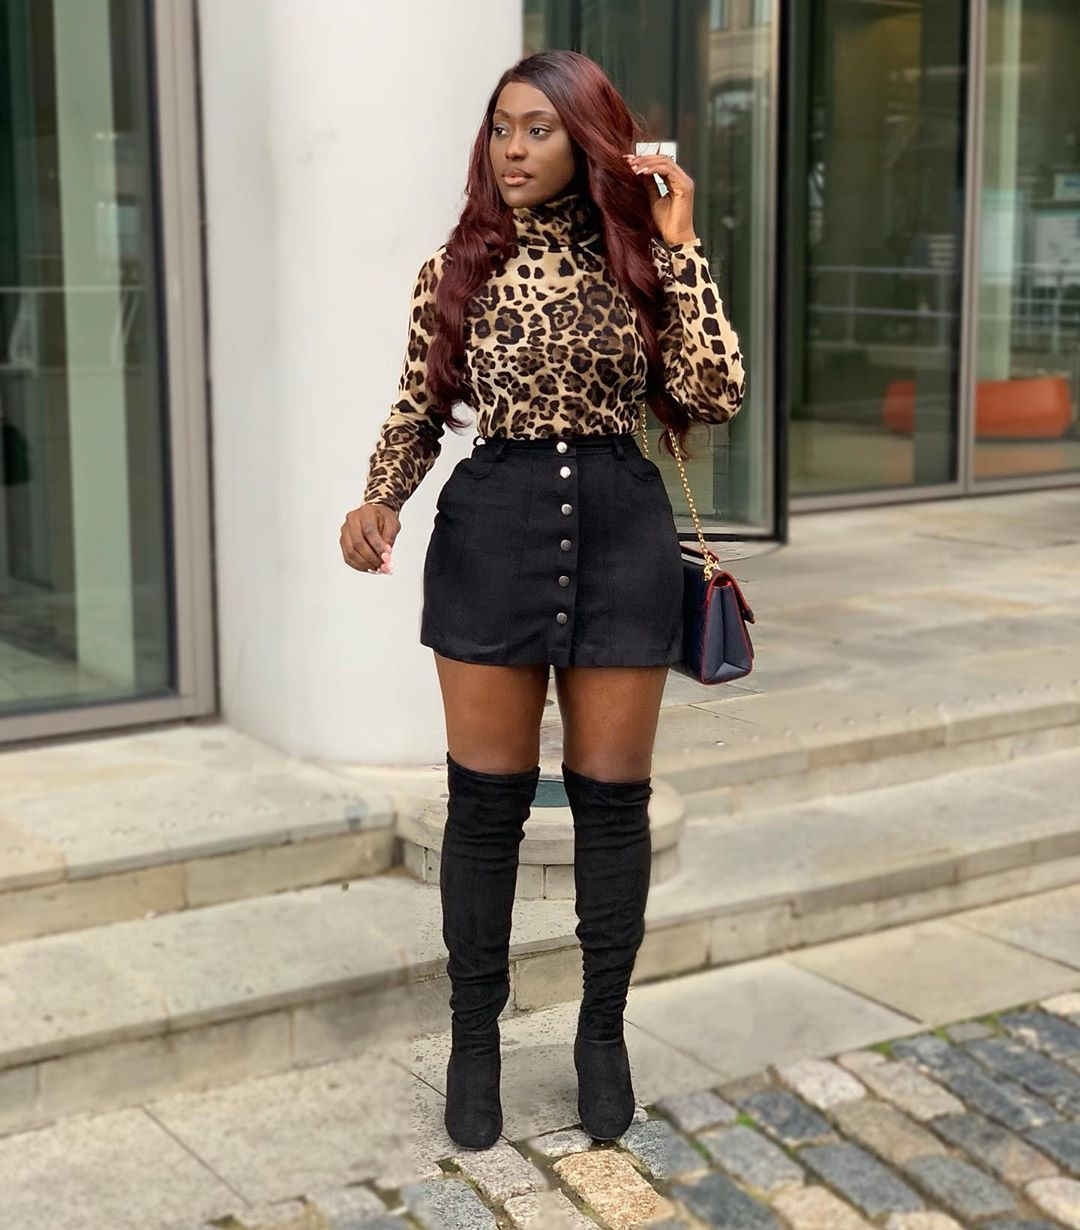 linda-osifo-nigerian-celeb-the-most-rave-worthy-looks-on-women-across-africa-celebs-style-rave